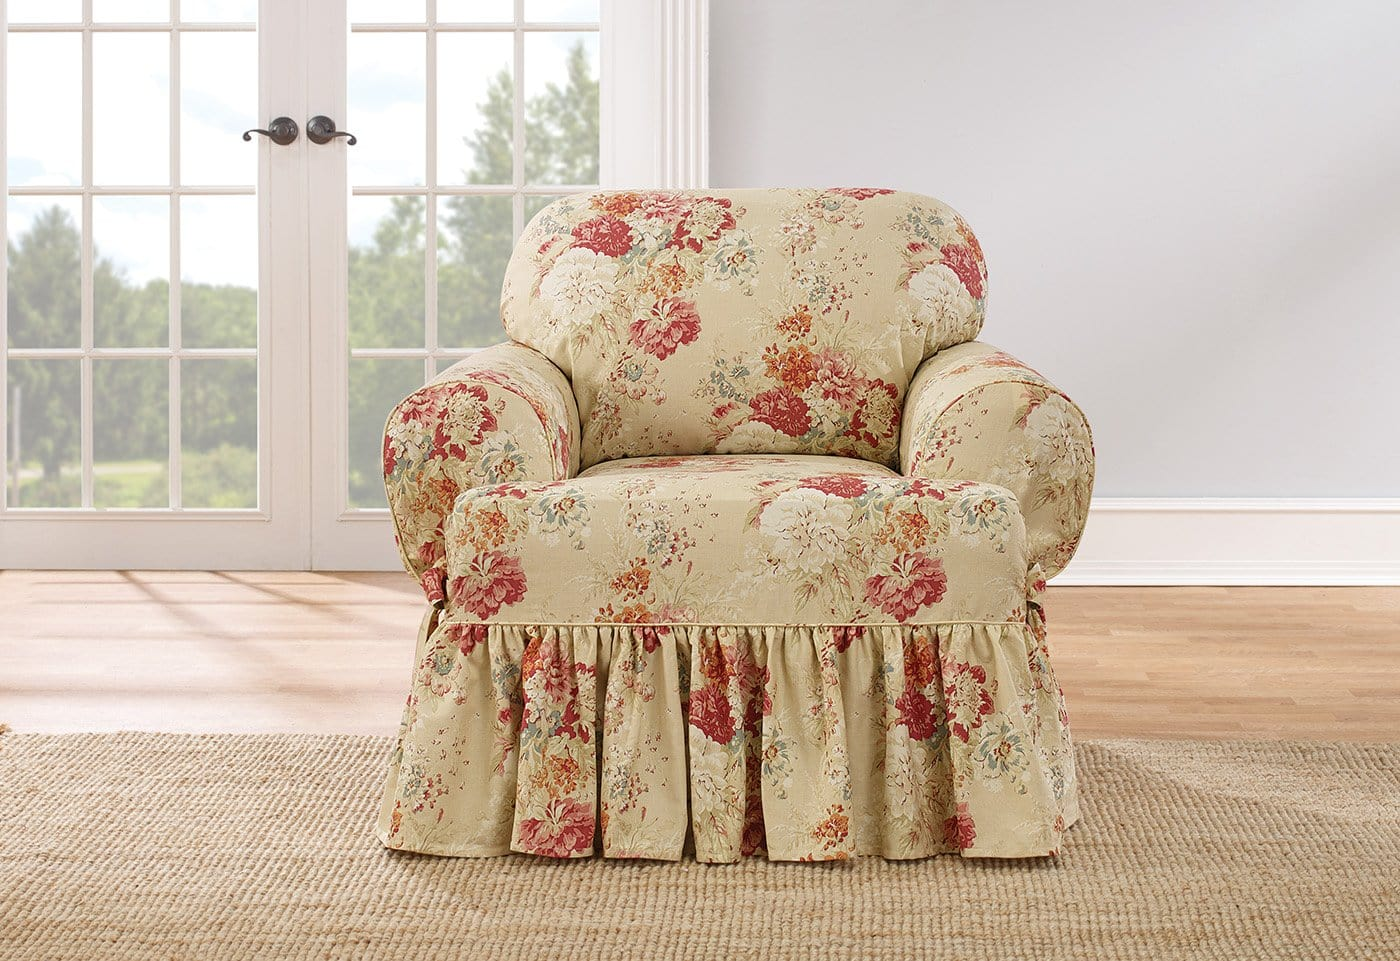 Ballad Bouquet By Waverly One Piece Chair Slipcover 100% Cotton Machine Washable - Chair / T-Cushion / Blush